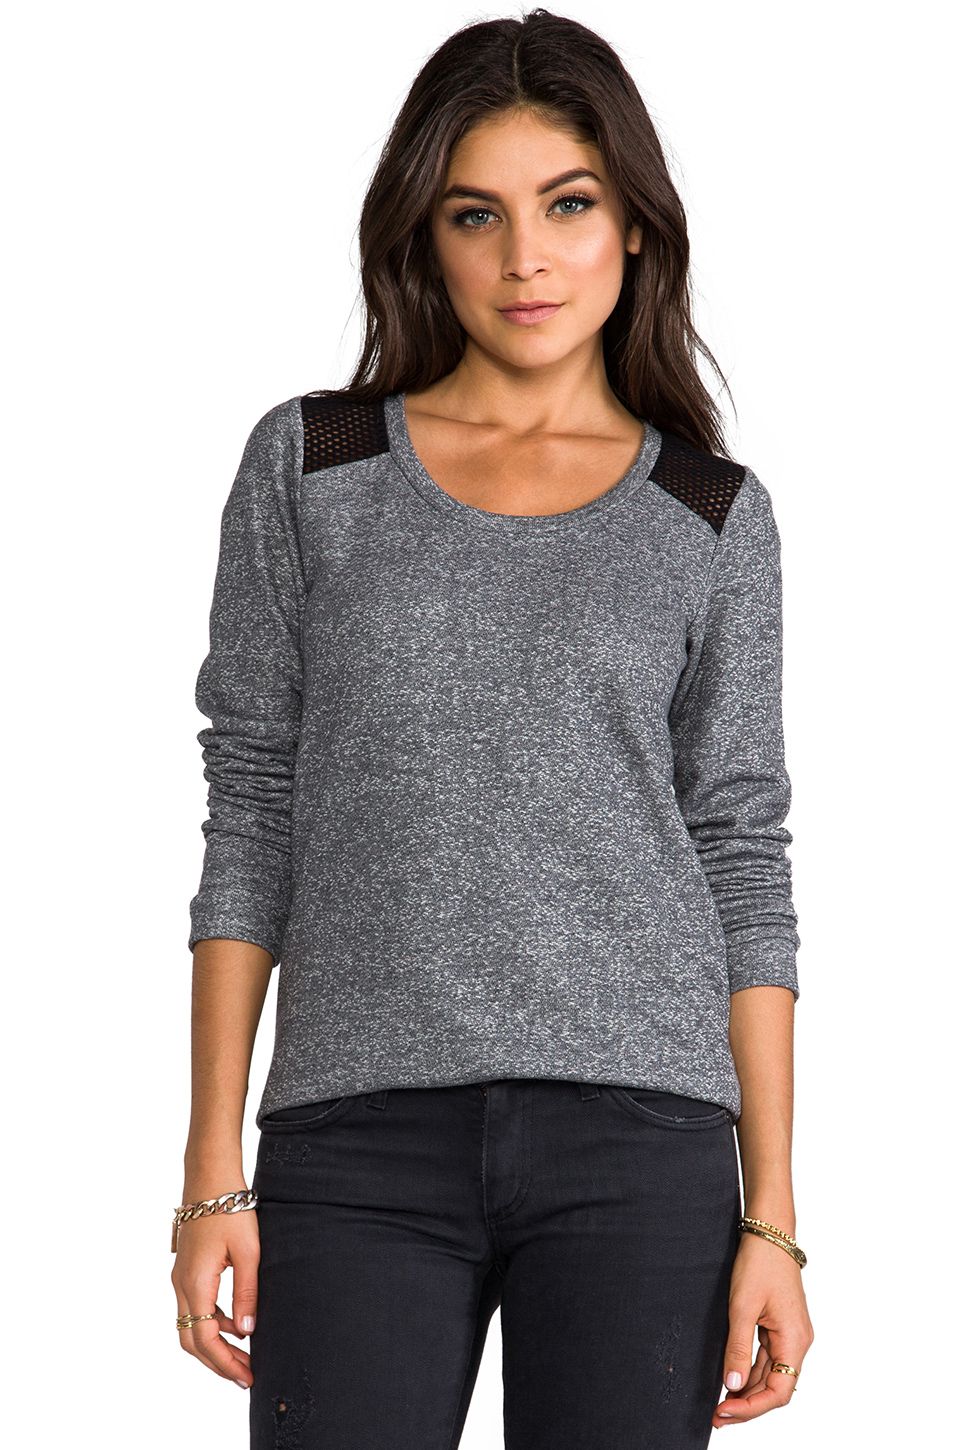 Whetherly Rosario Mesh Long Sleeve Tee in Gray at Revolve Clothing